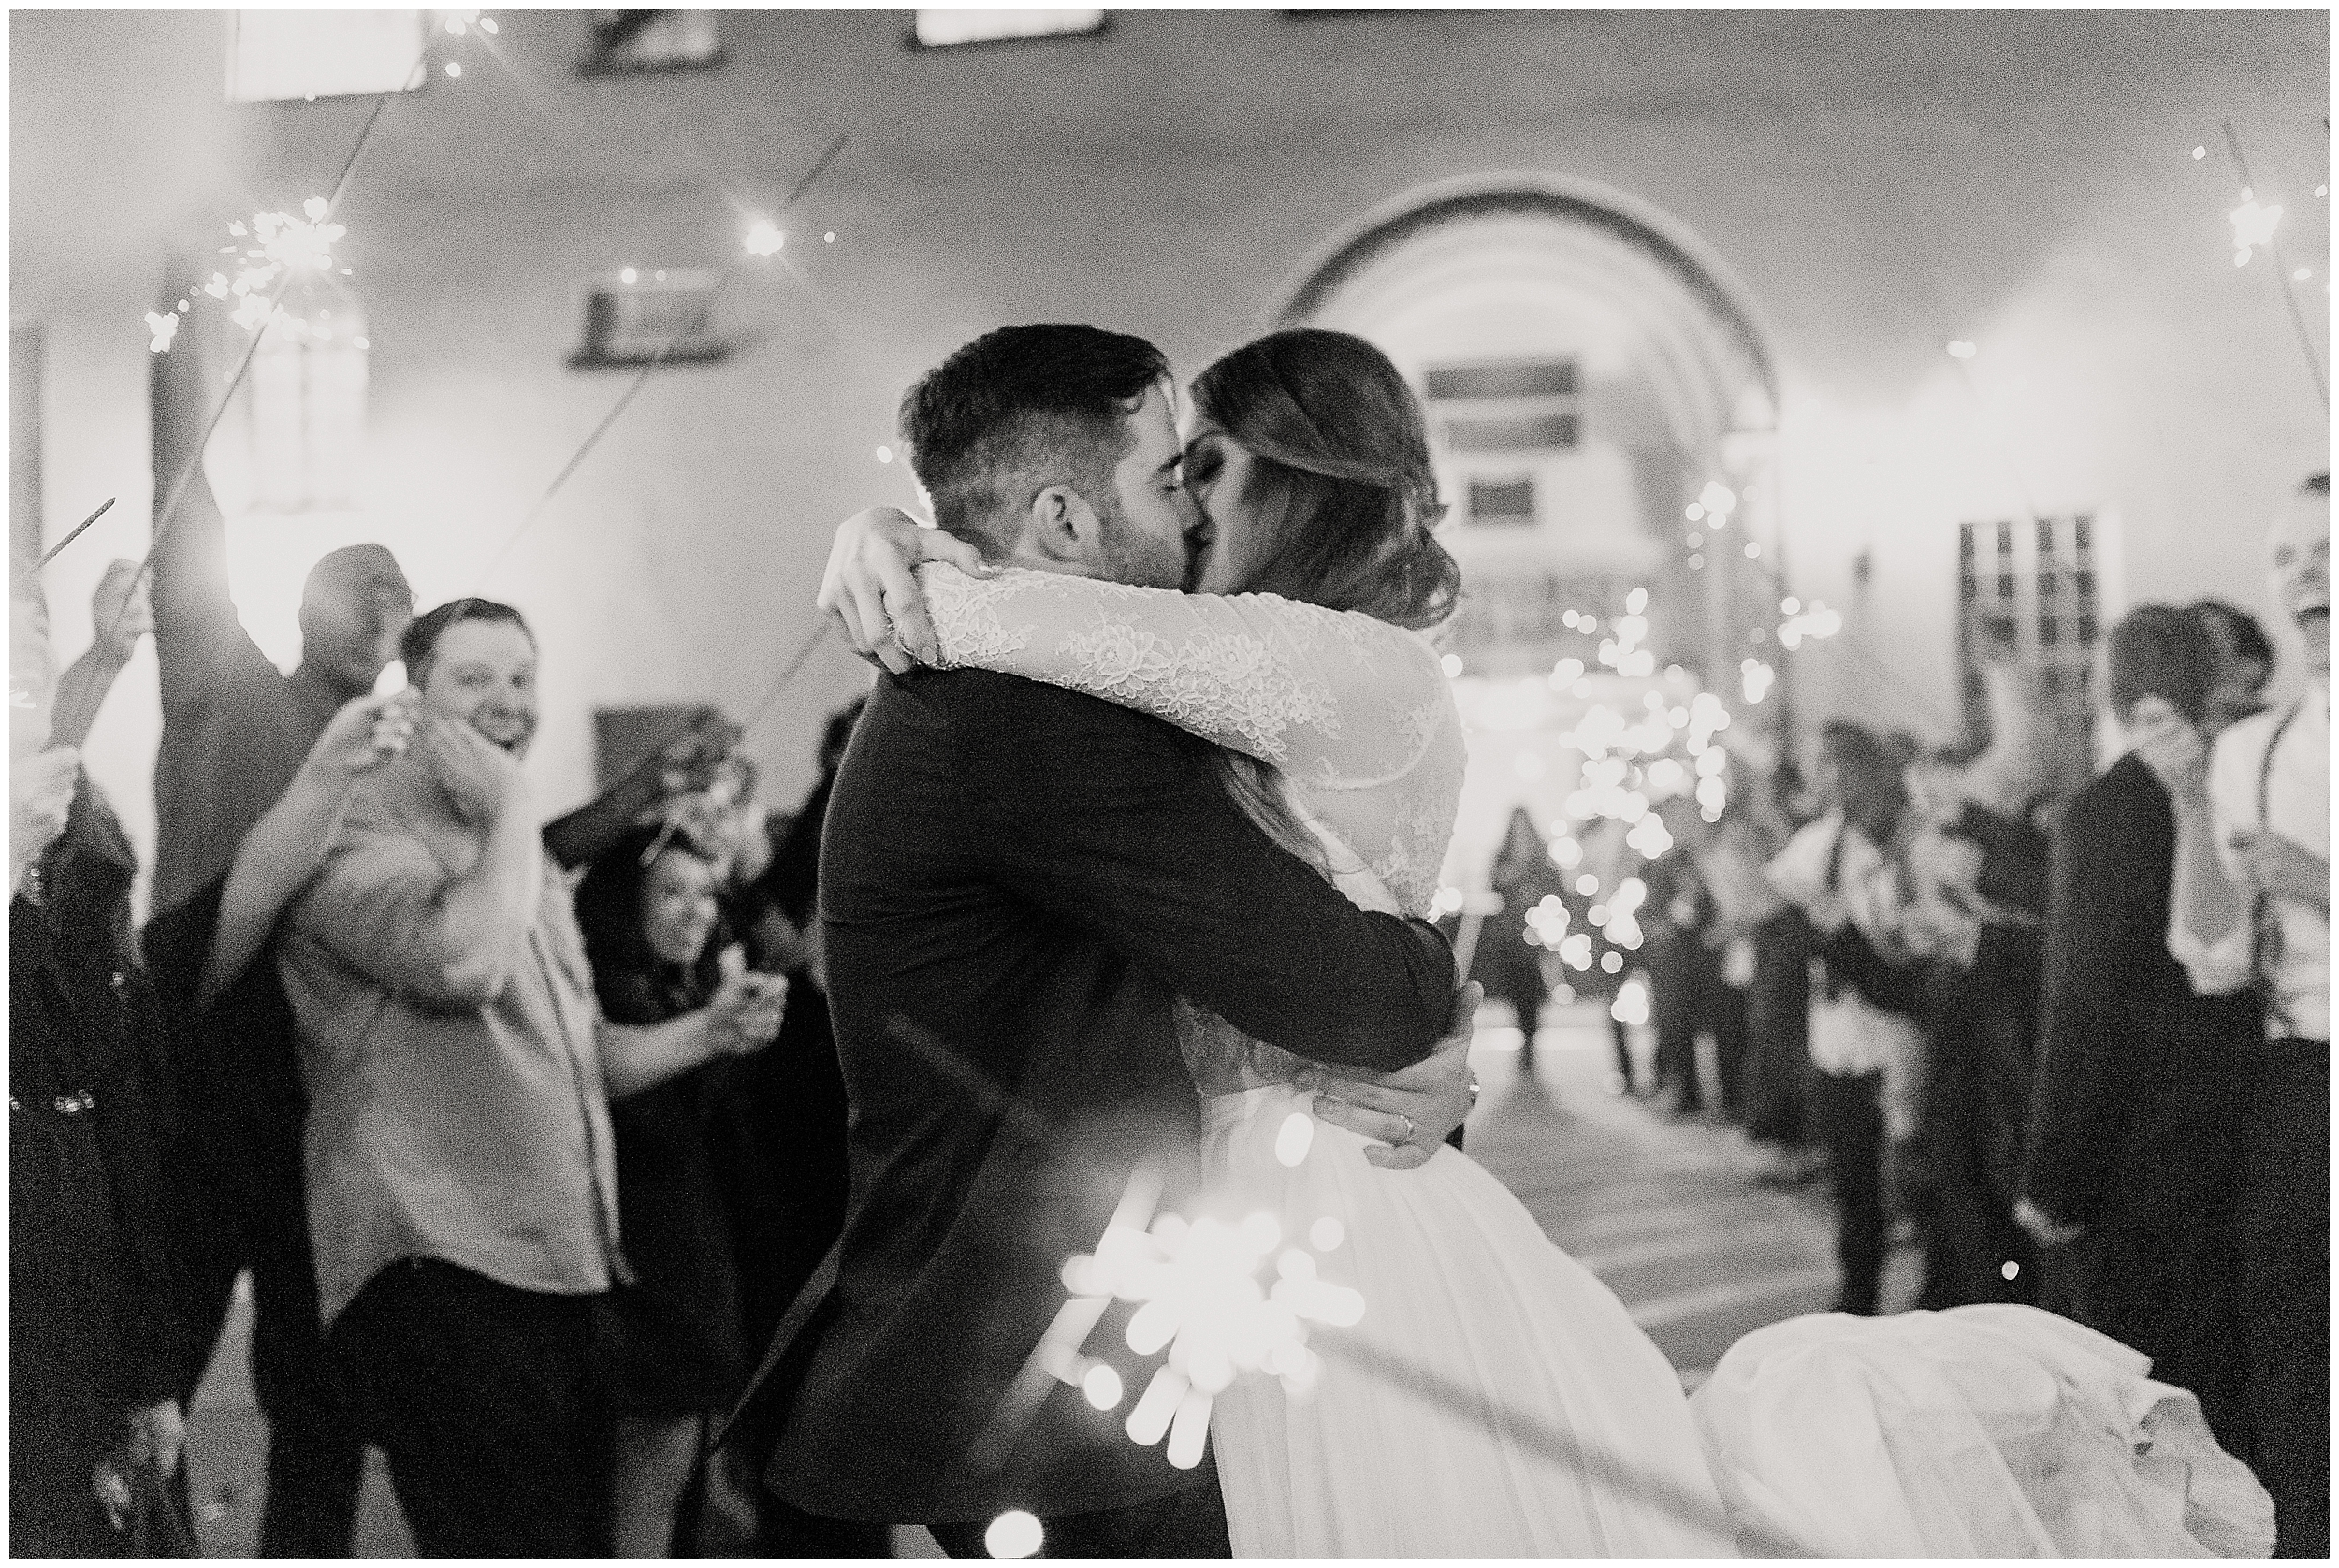 oklahoma wedding photographer reception family friends hugs congratulations best wishes toasts going away sparklers party